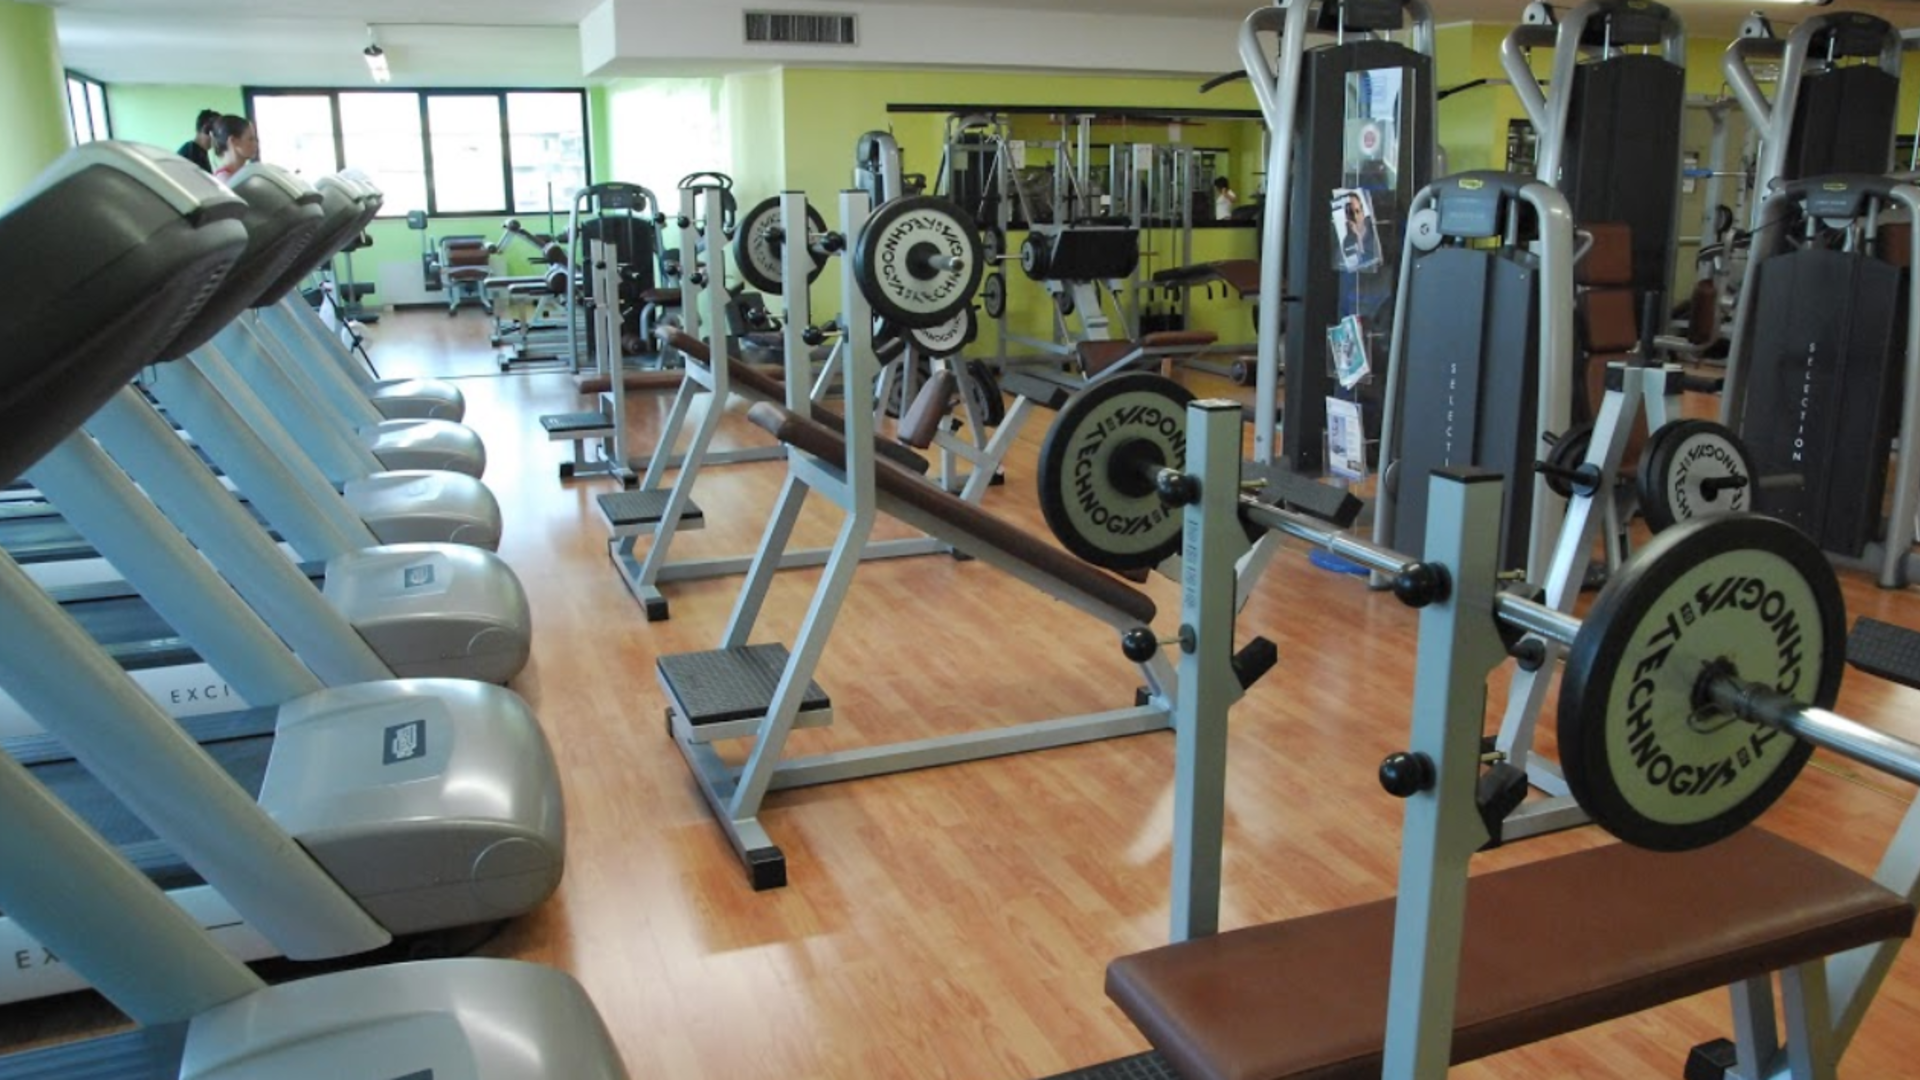 Eleven Fitness Club